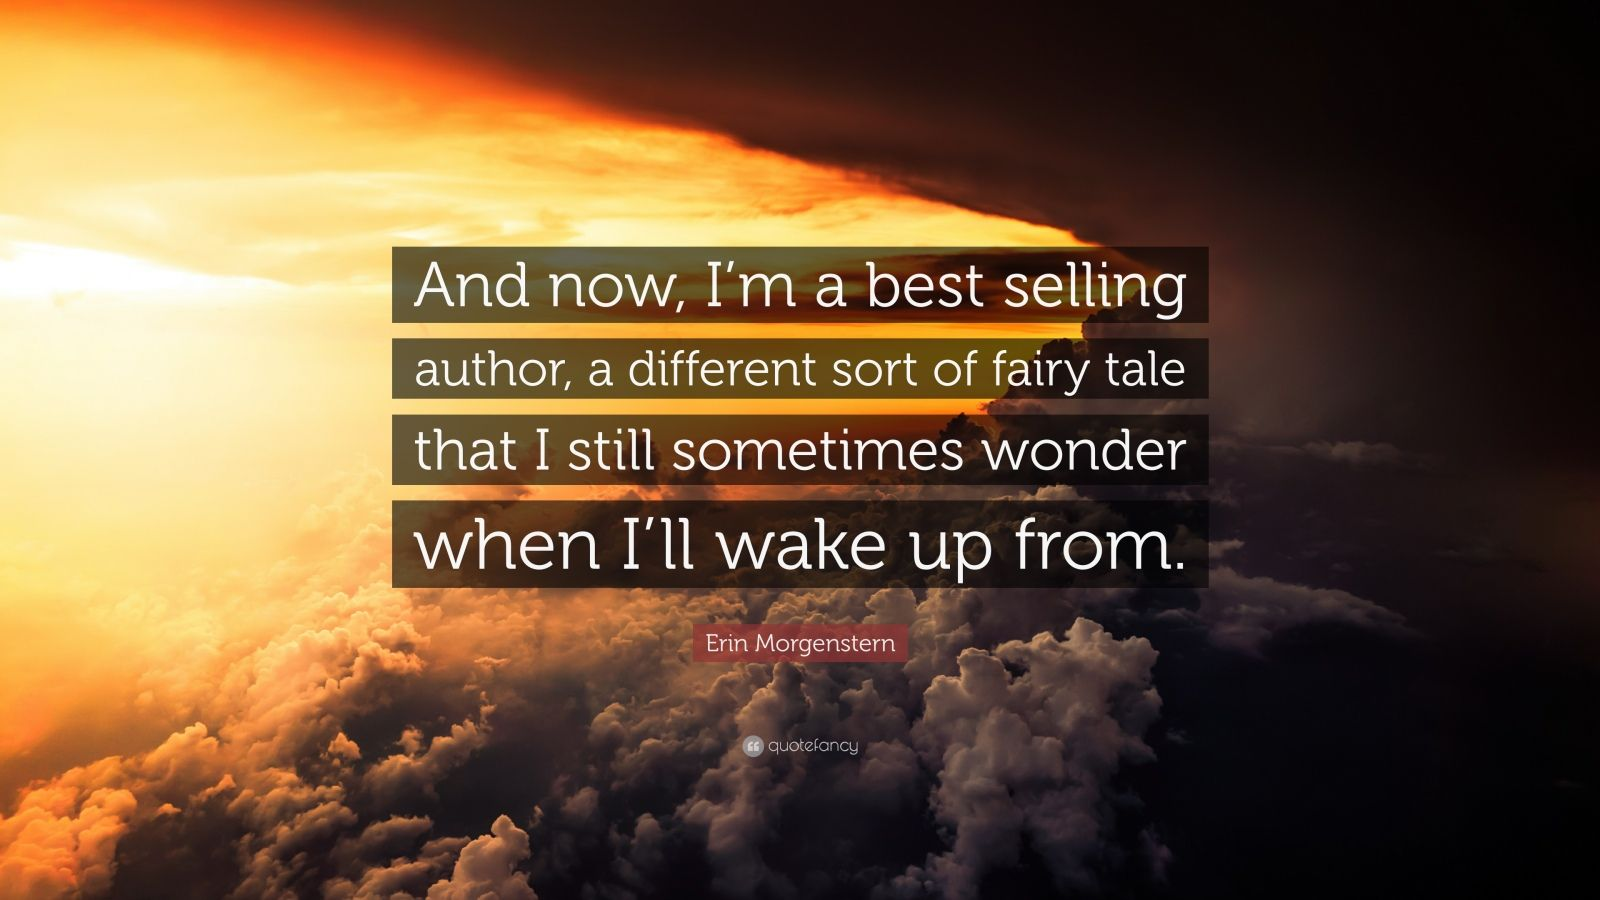 """Erin Morgenstern Quote: """"And now, I'm a best selling author, a different sort of fairy tale that I still sometimes wonder when I'll wake up from."""""""